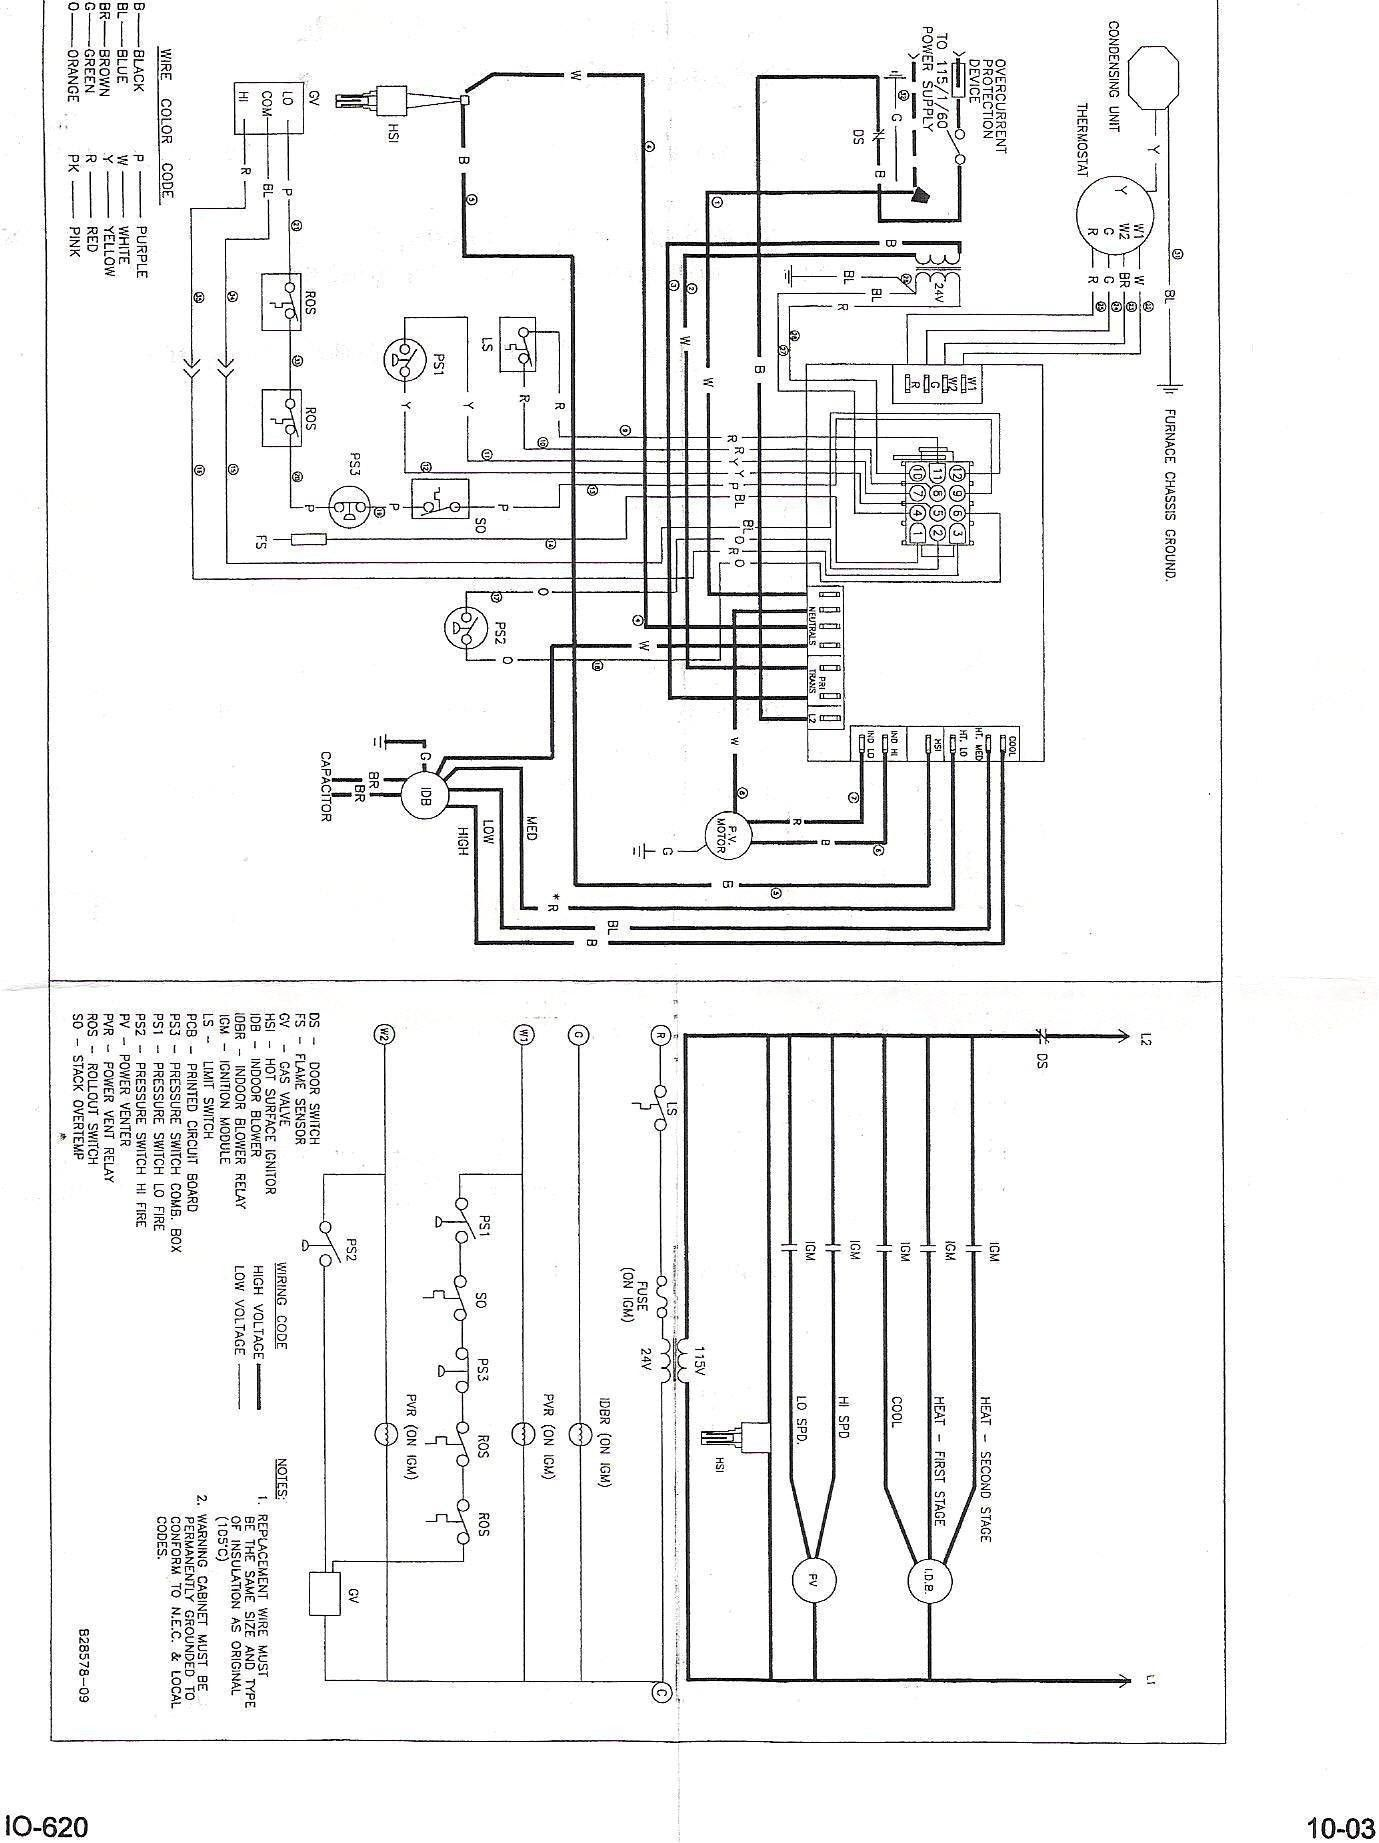 Diagram  Trane Furnace Wiring Diagram Model Numtuh1b Full